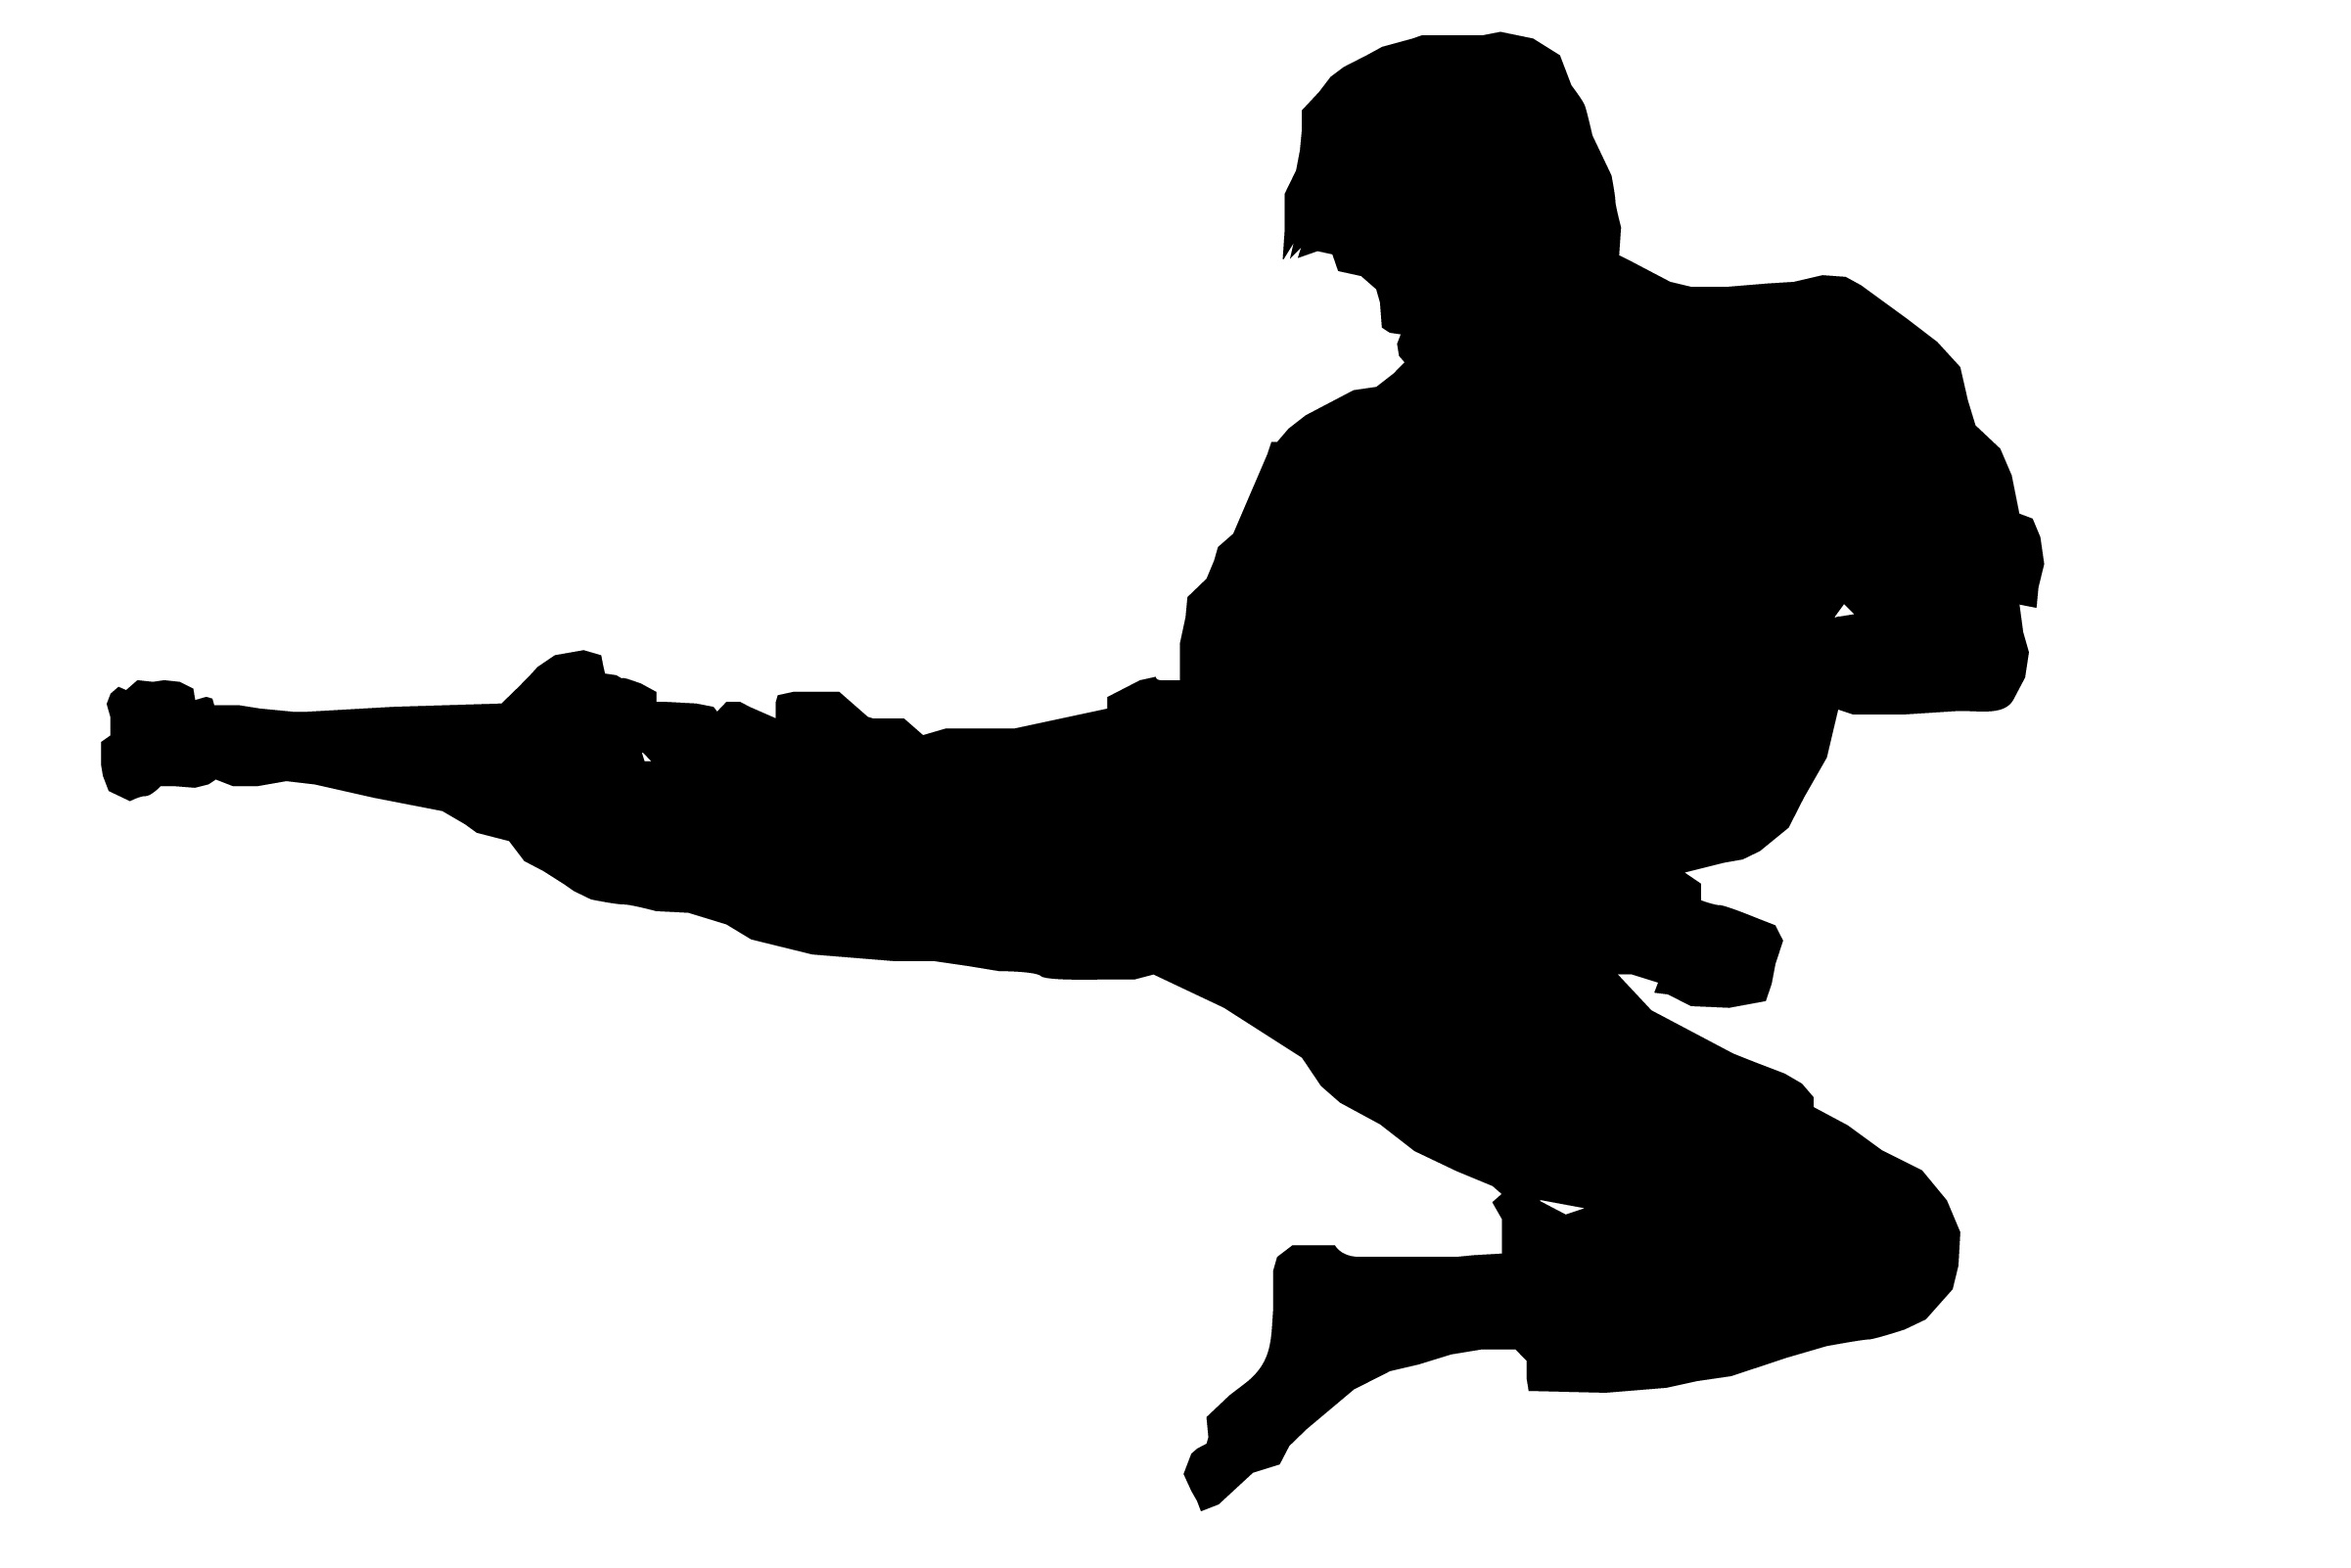 Martial arts stick silhouette clipart black and white transparent library Karate Clipart Black And White | Free download best Karate Clipart ... transparent library